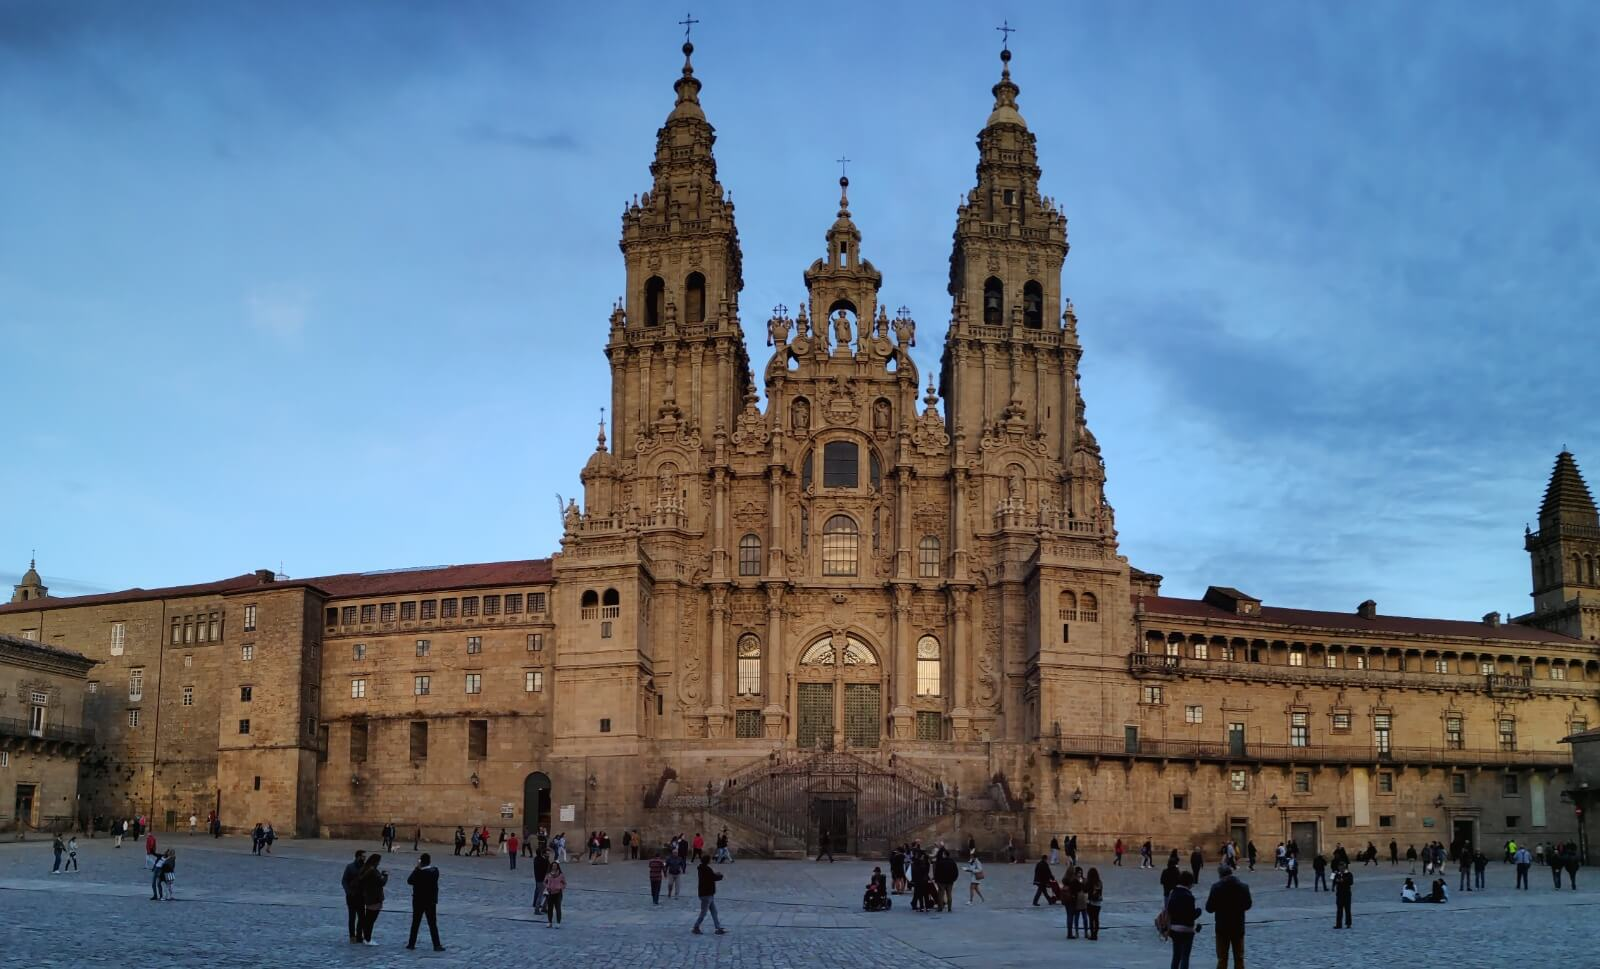 What to see and do in Northern Spain: top 6 ideas - 1. Santiago de Compostela Cathedral